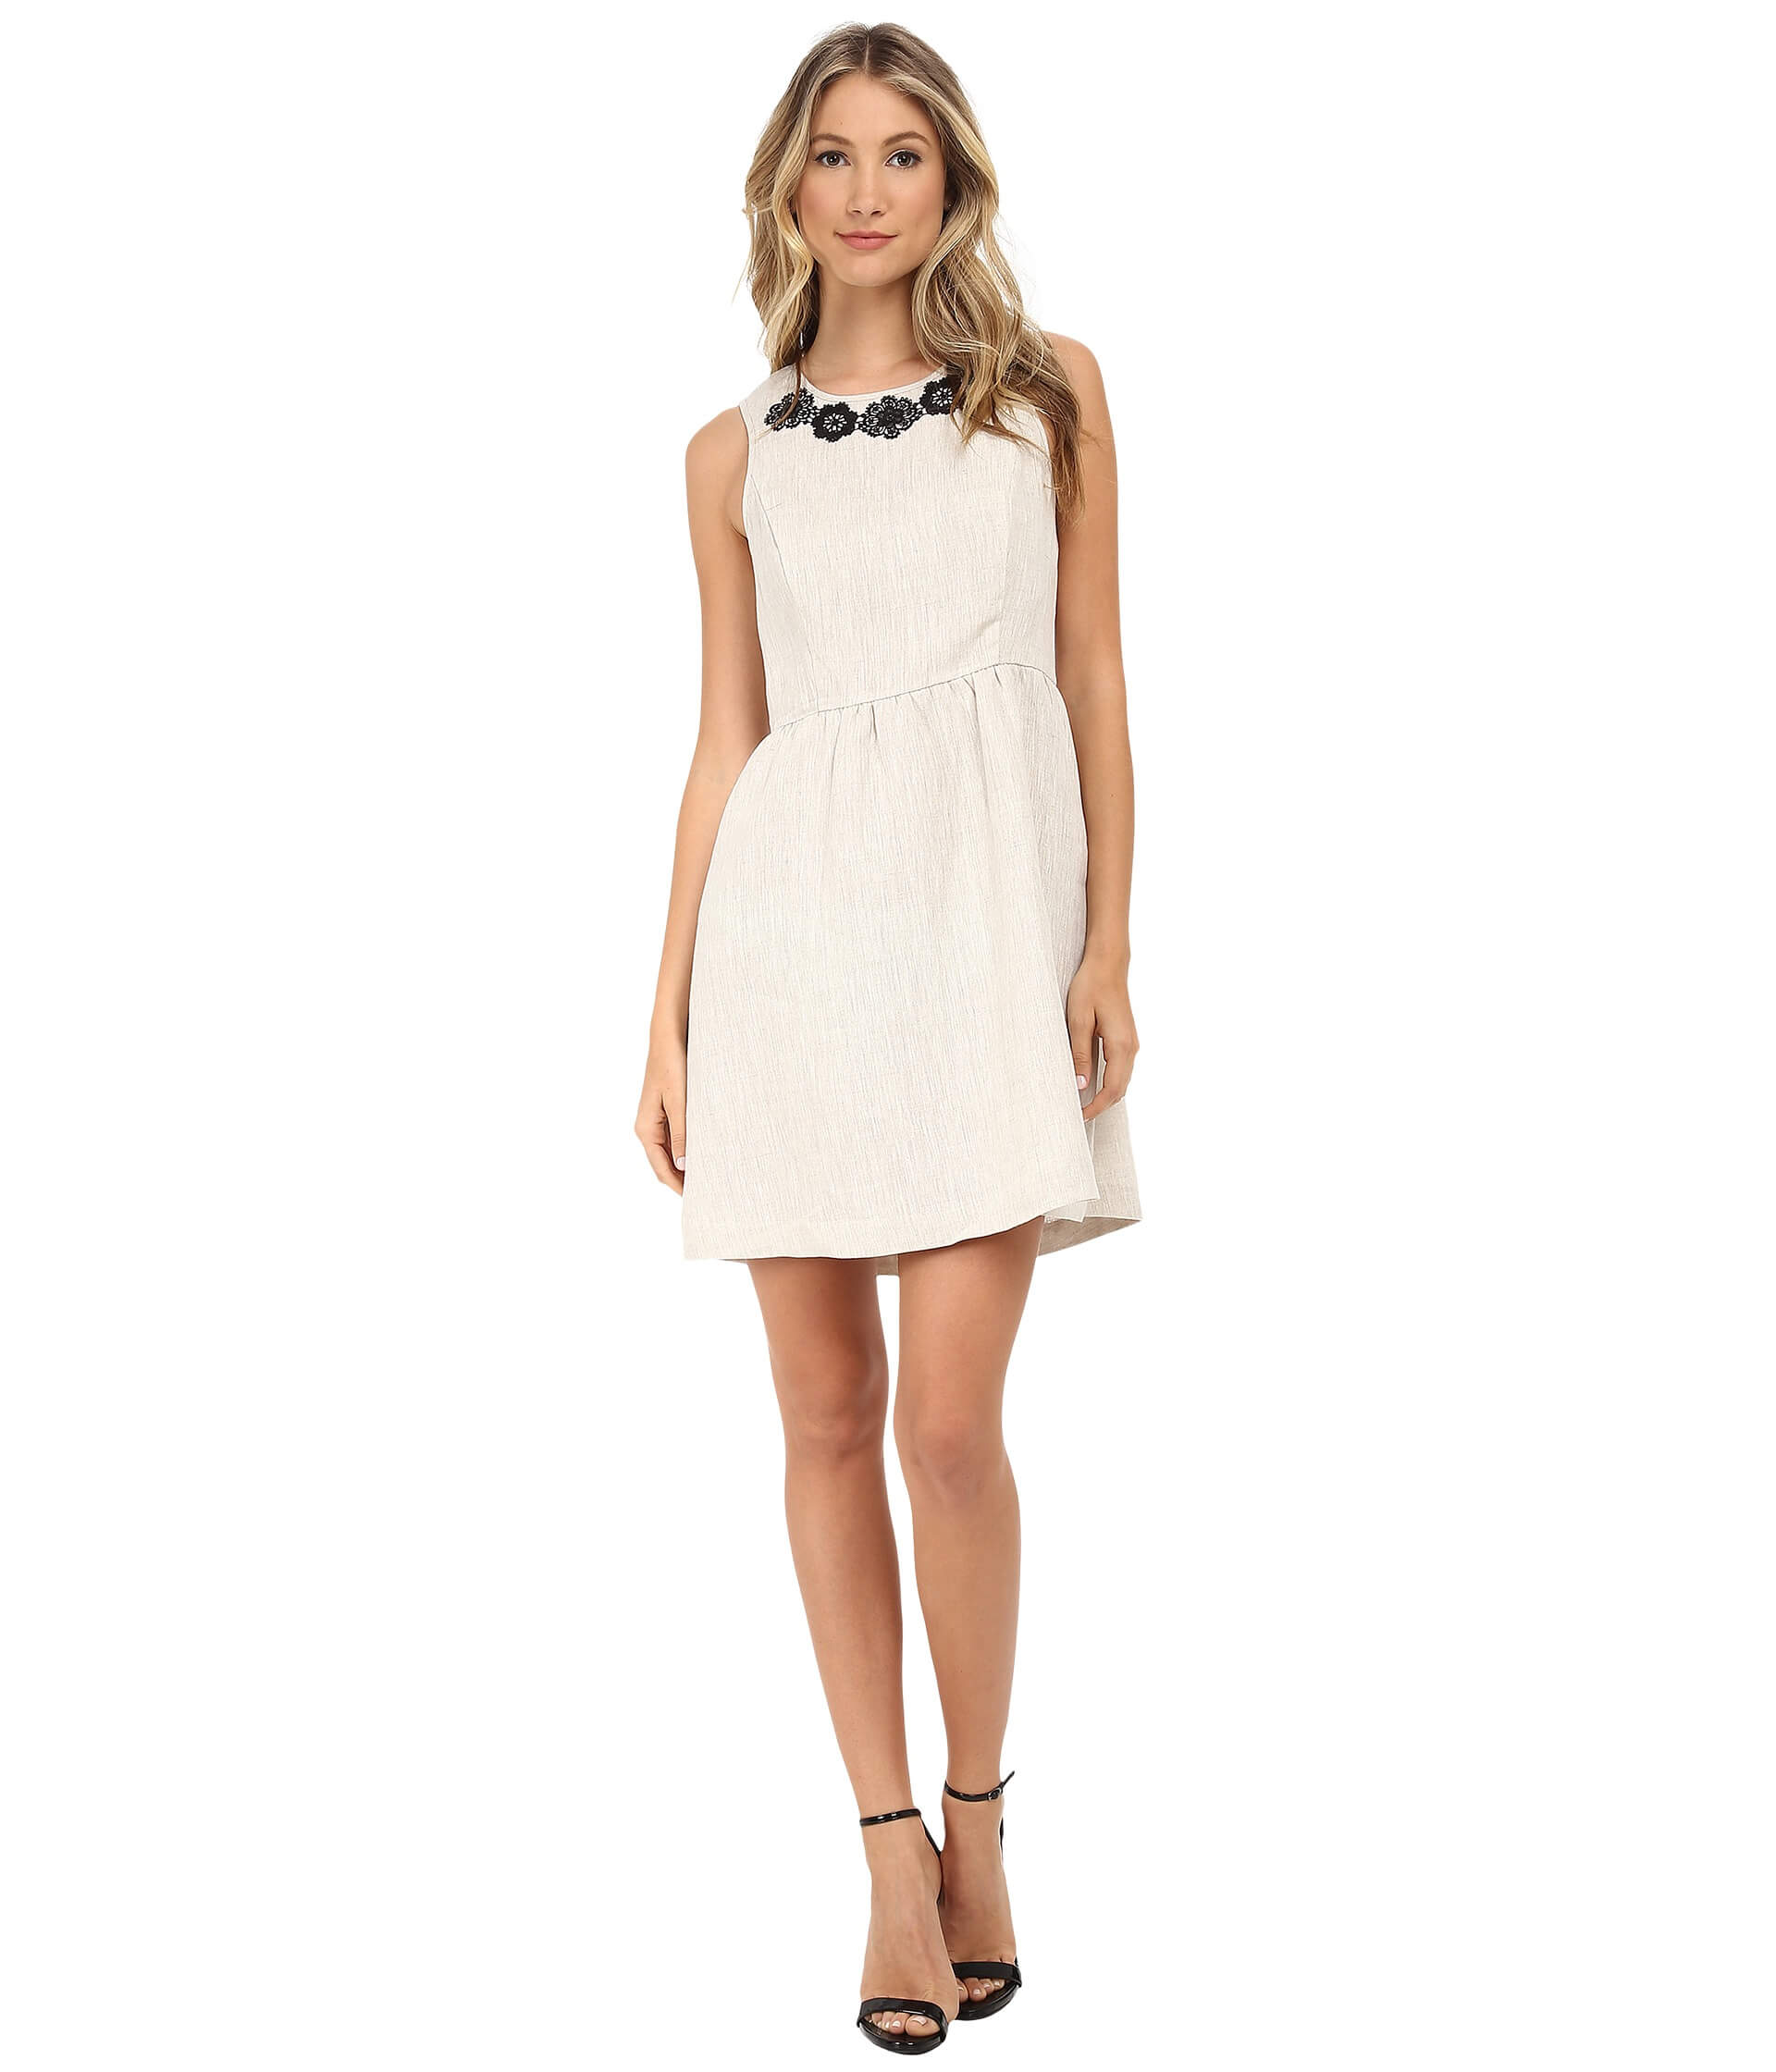 business casual dress for women photo - 1